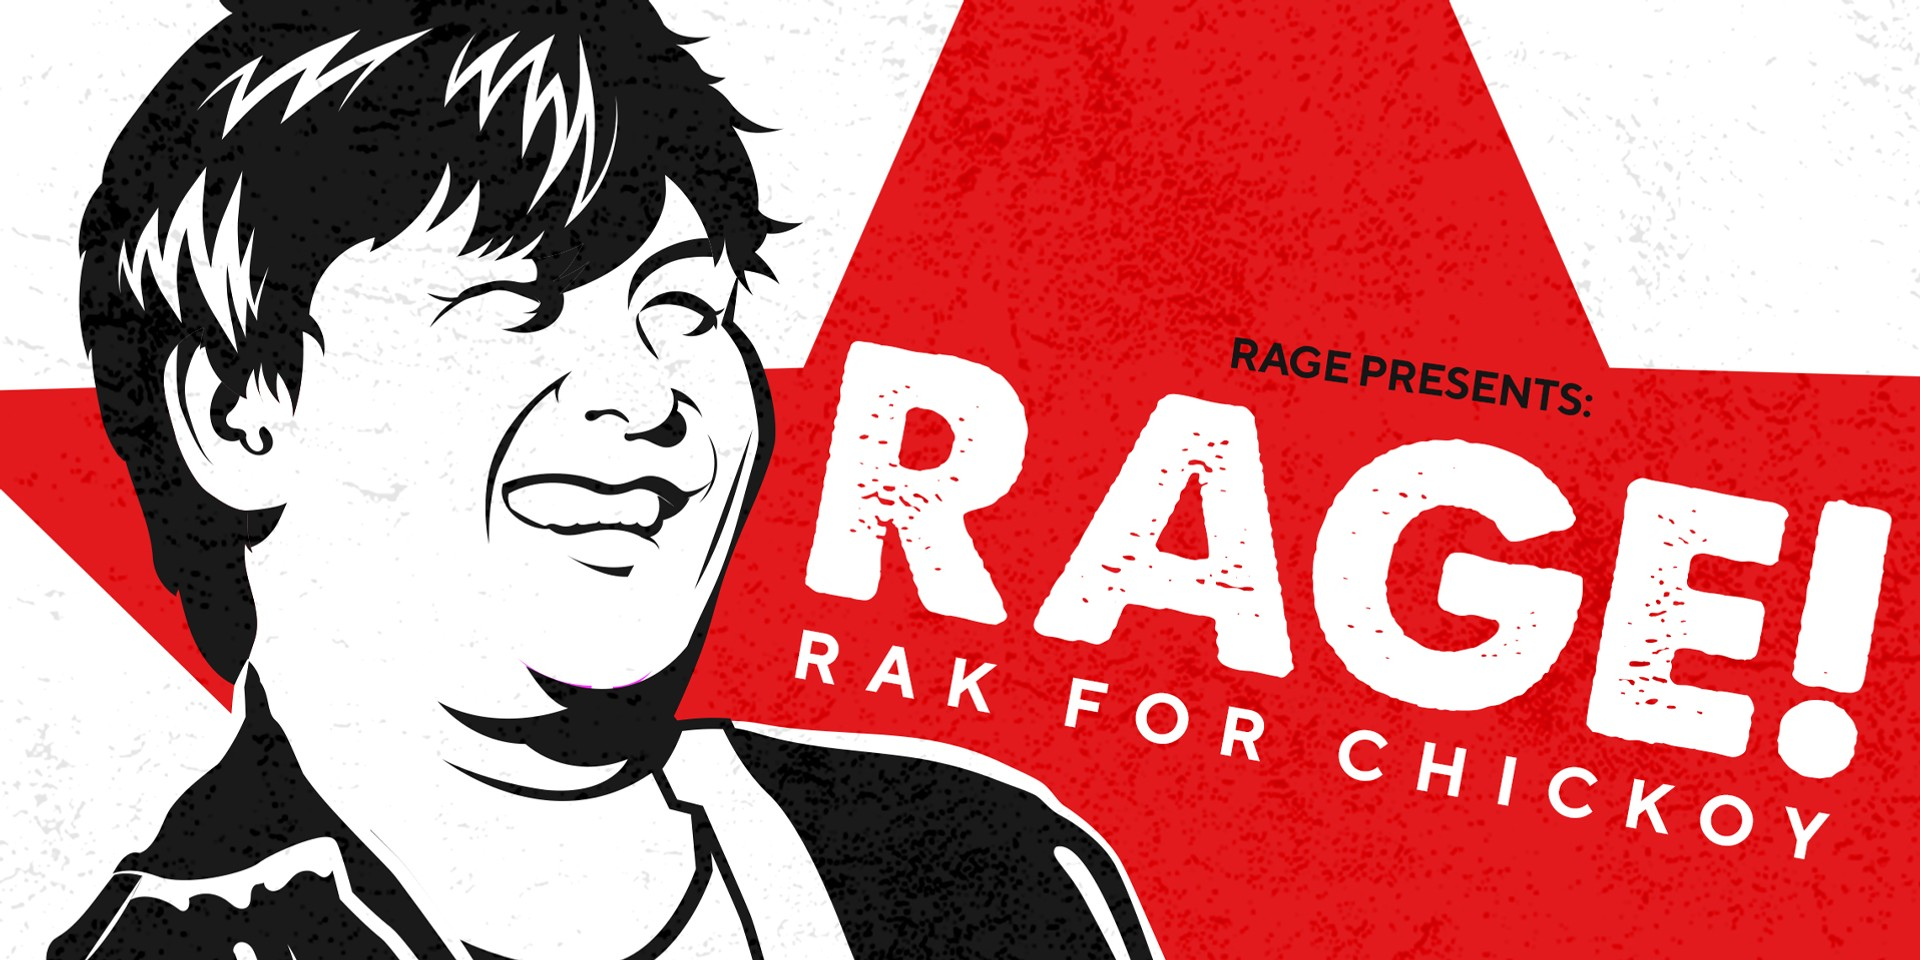 Ultracombo, Ebe Dancel, Bullet Dumas, and more to perform at benefit gig RAGE! Presents: Rak for Chickoy